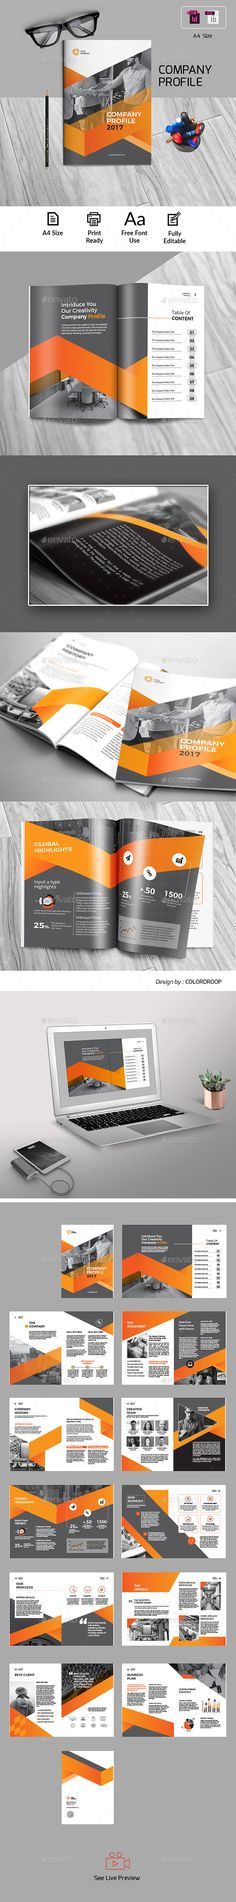 Company profile template indesign indd company profile design company profile pronofoot35fo Gallery